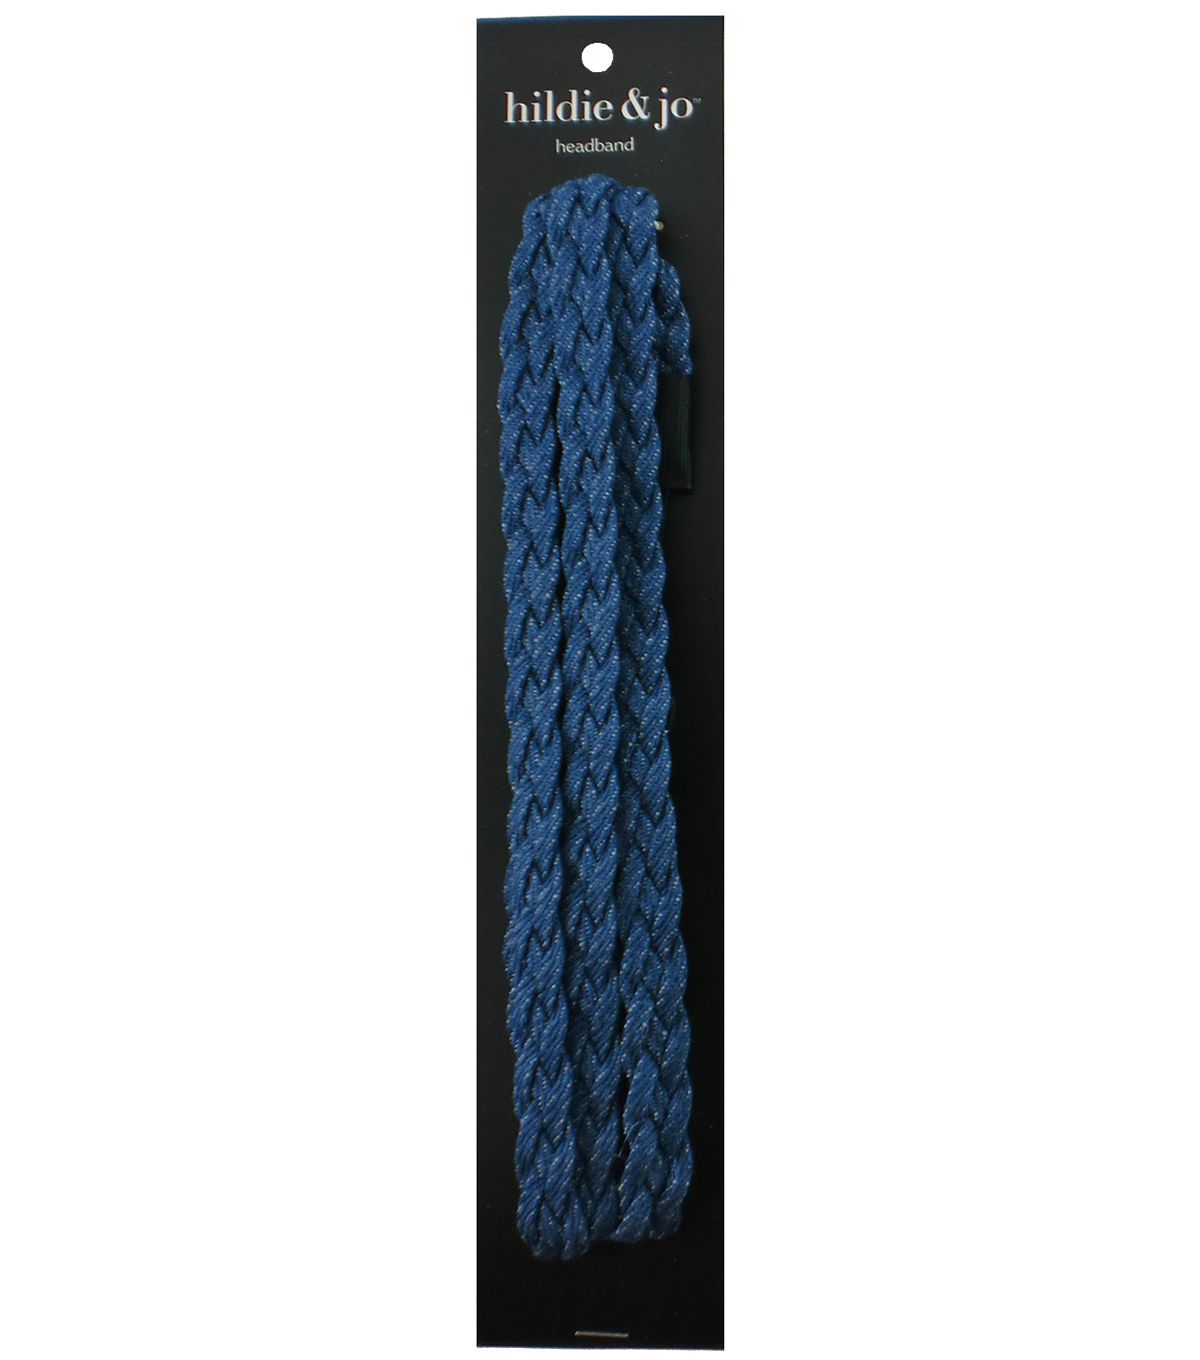 hildie & jo Triple Braided Headband-Blue